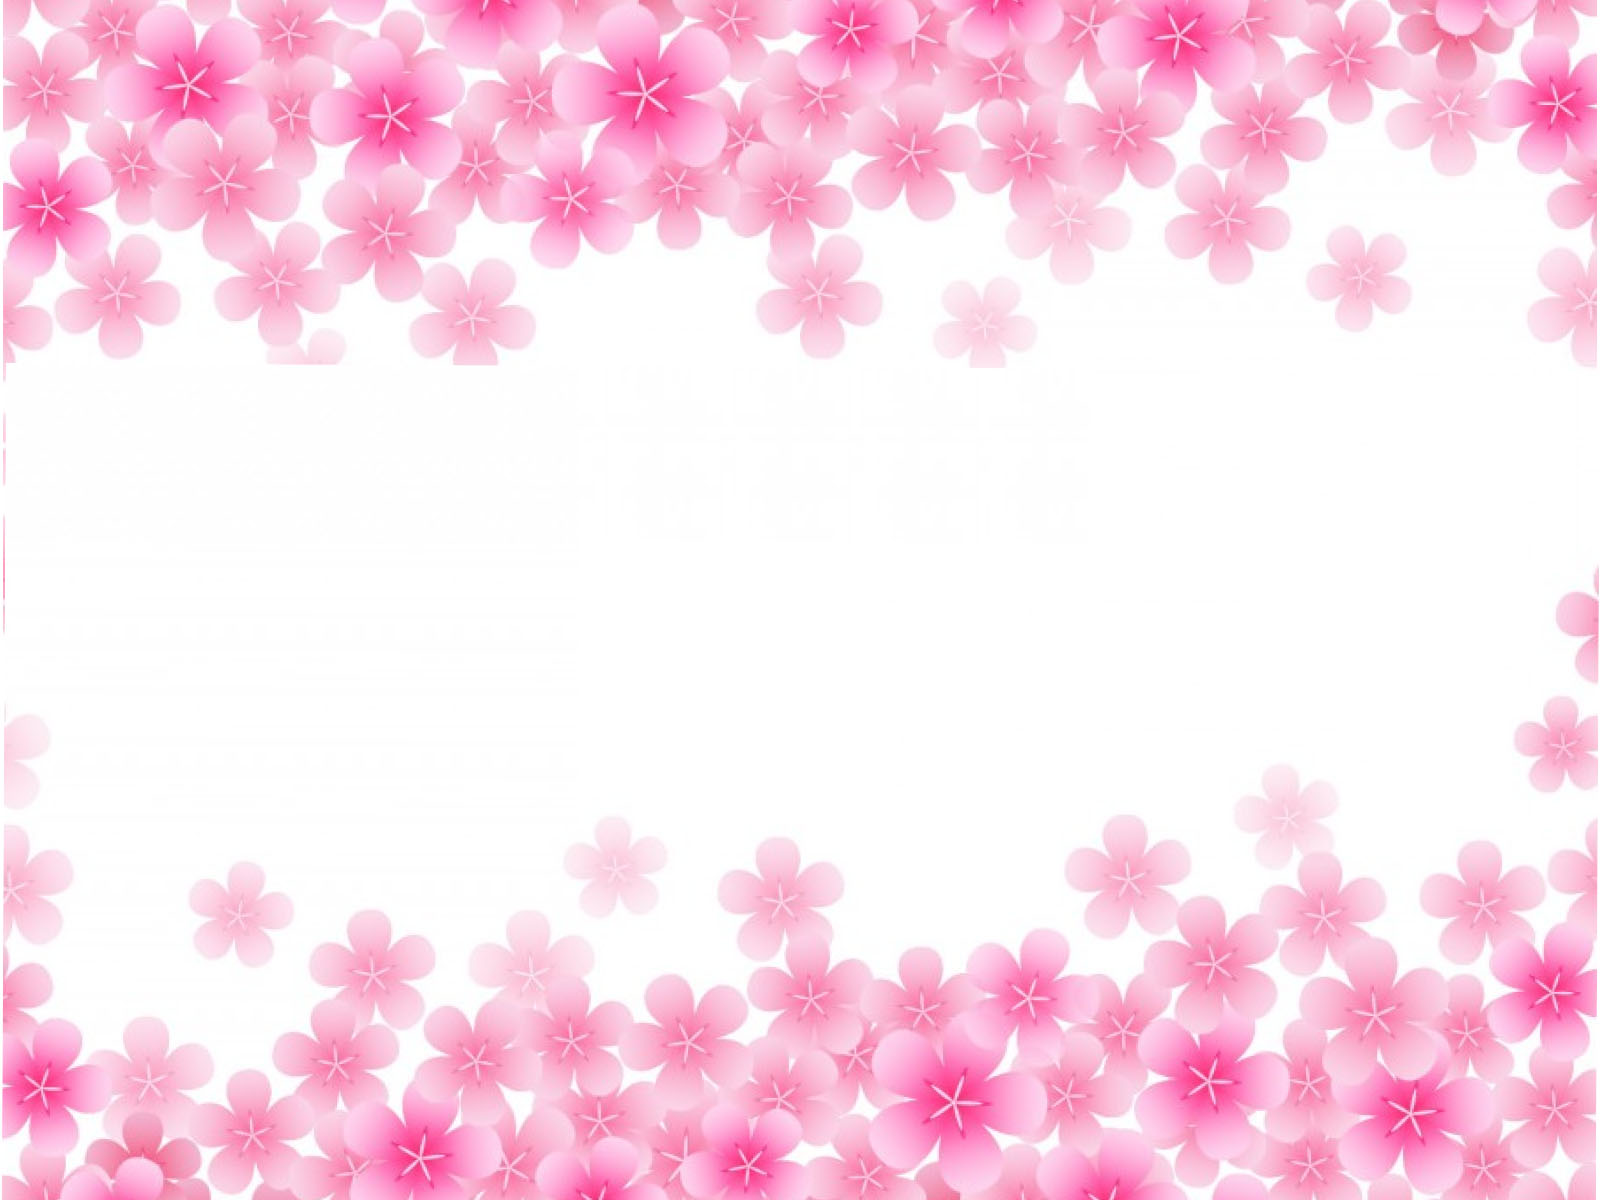 Flowers Background Burlap And Downloadable